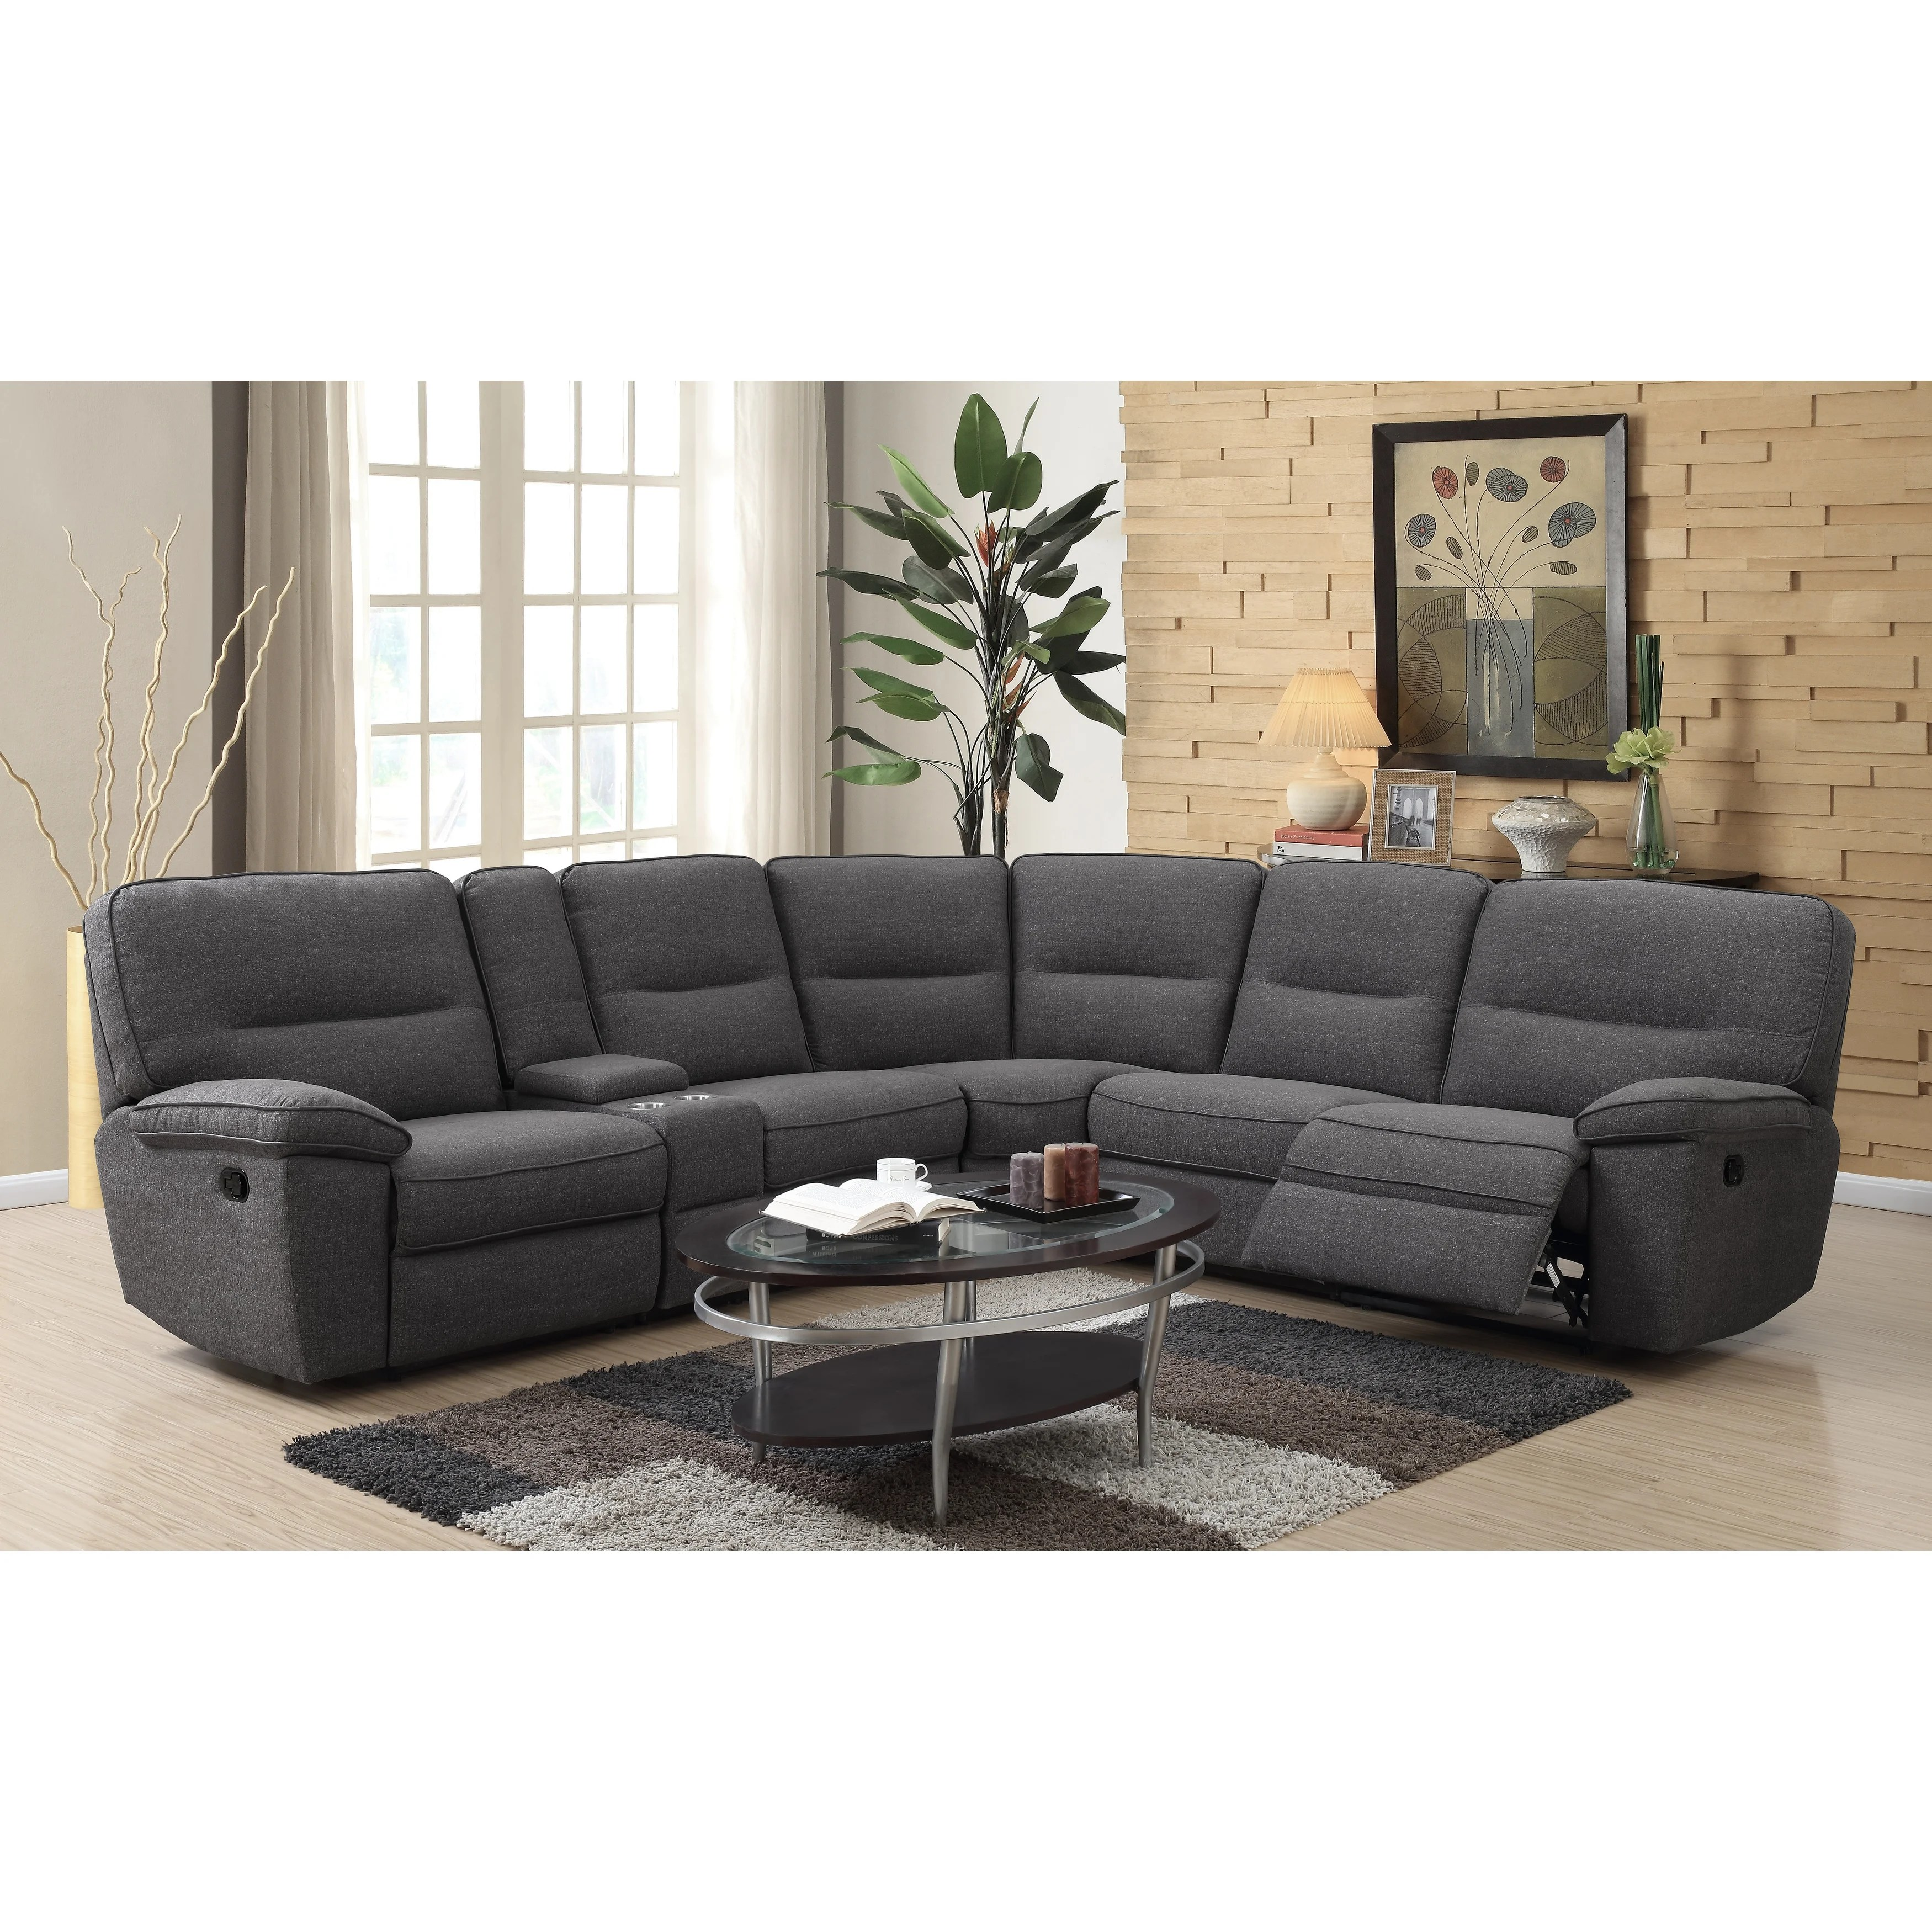 strick bolton crosby charcoal modular reclining sectional